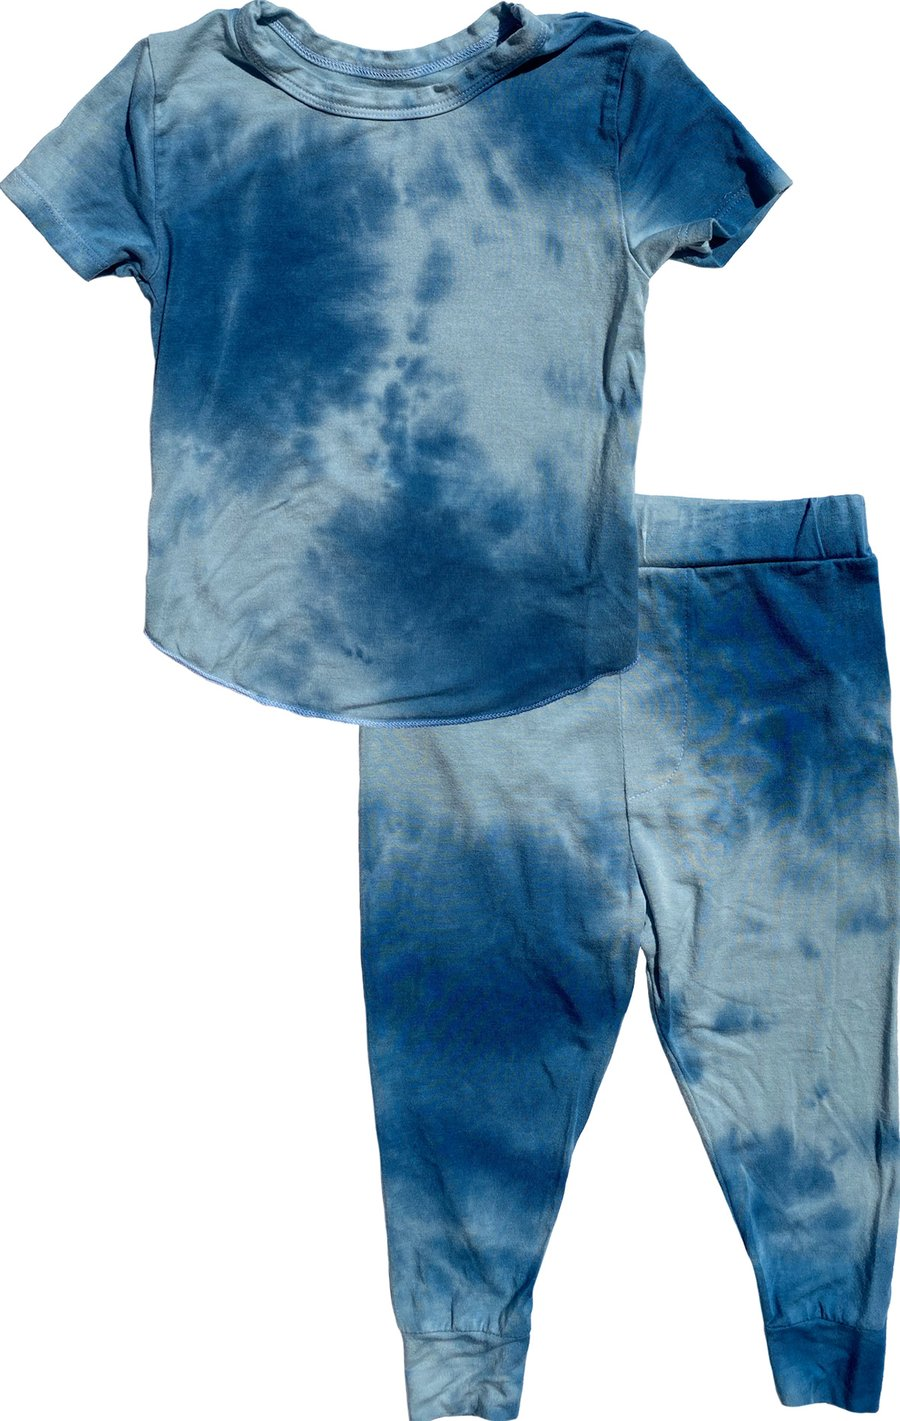 Rowdy Sprout Rebel Tie Dye Bamboo Pajama Set - Blue